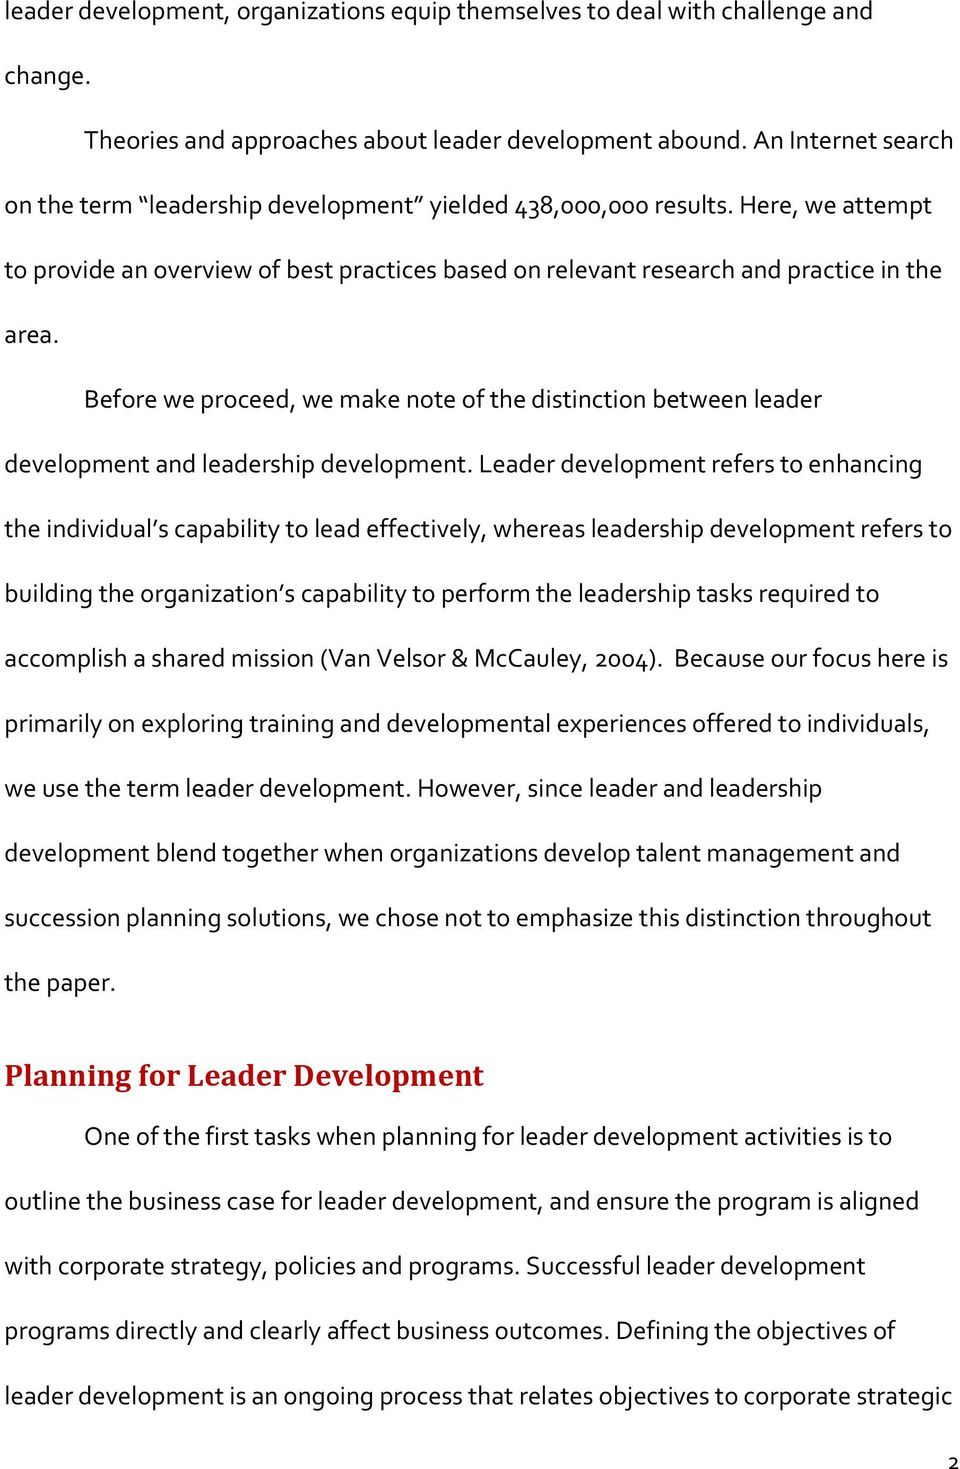 Before we proceed, we make note of the distinction between leader development and leadership development.